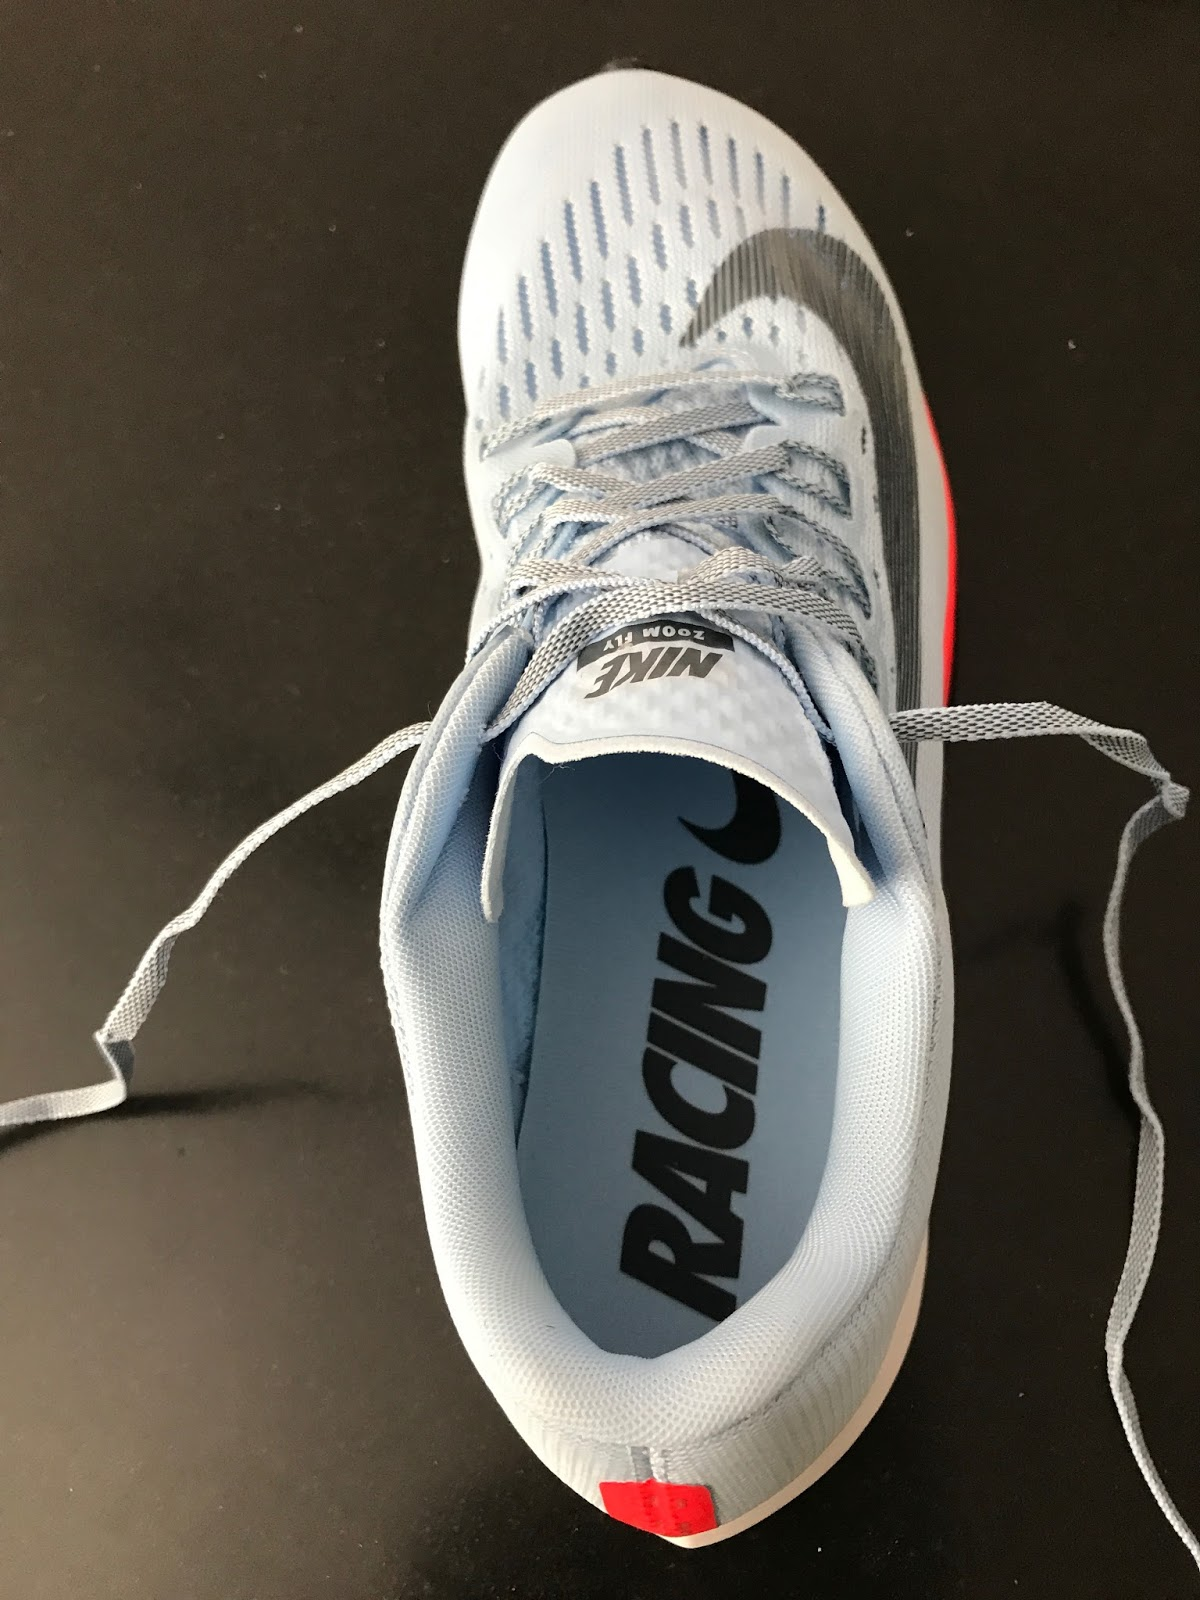 b088e1d36b5 The toe box is of an interesting design and shape. It is relatively narrow  but with very accommodating engineered mesh. The very front almost seems to  widen ...